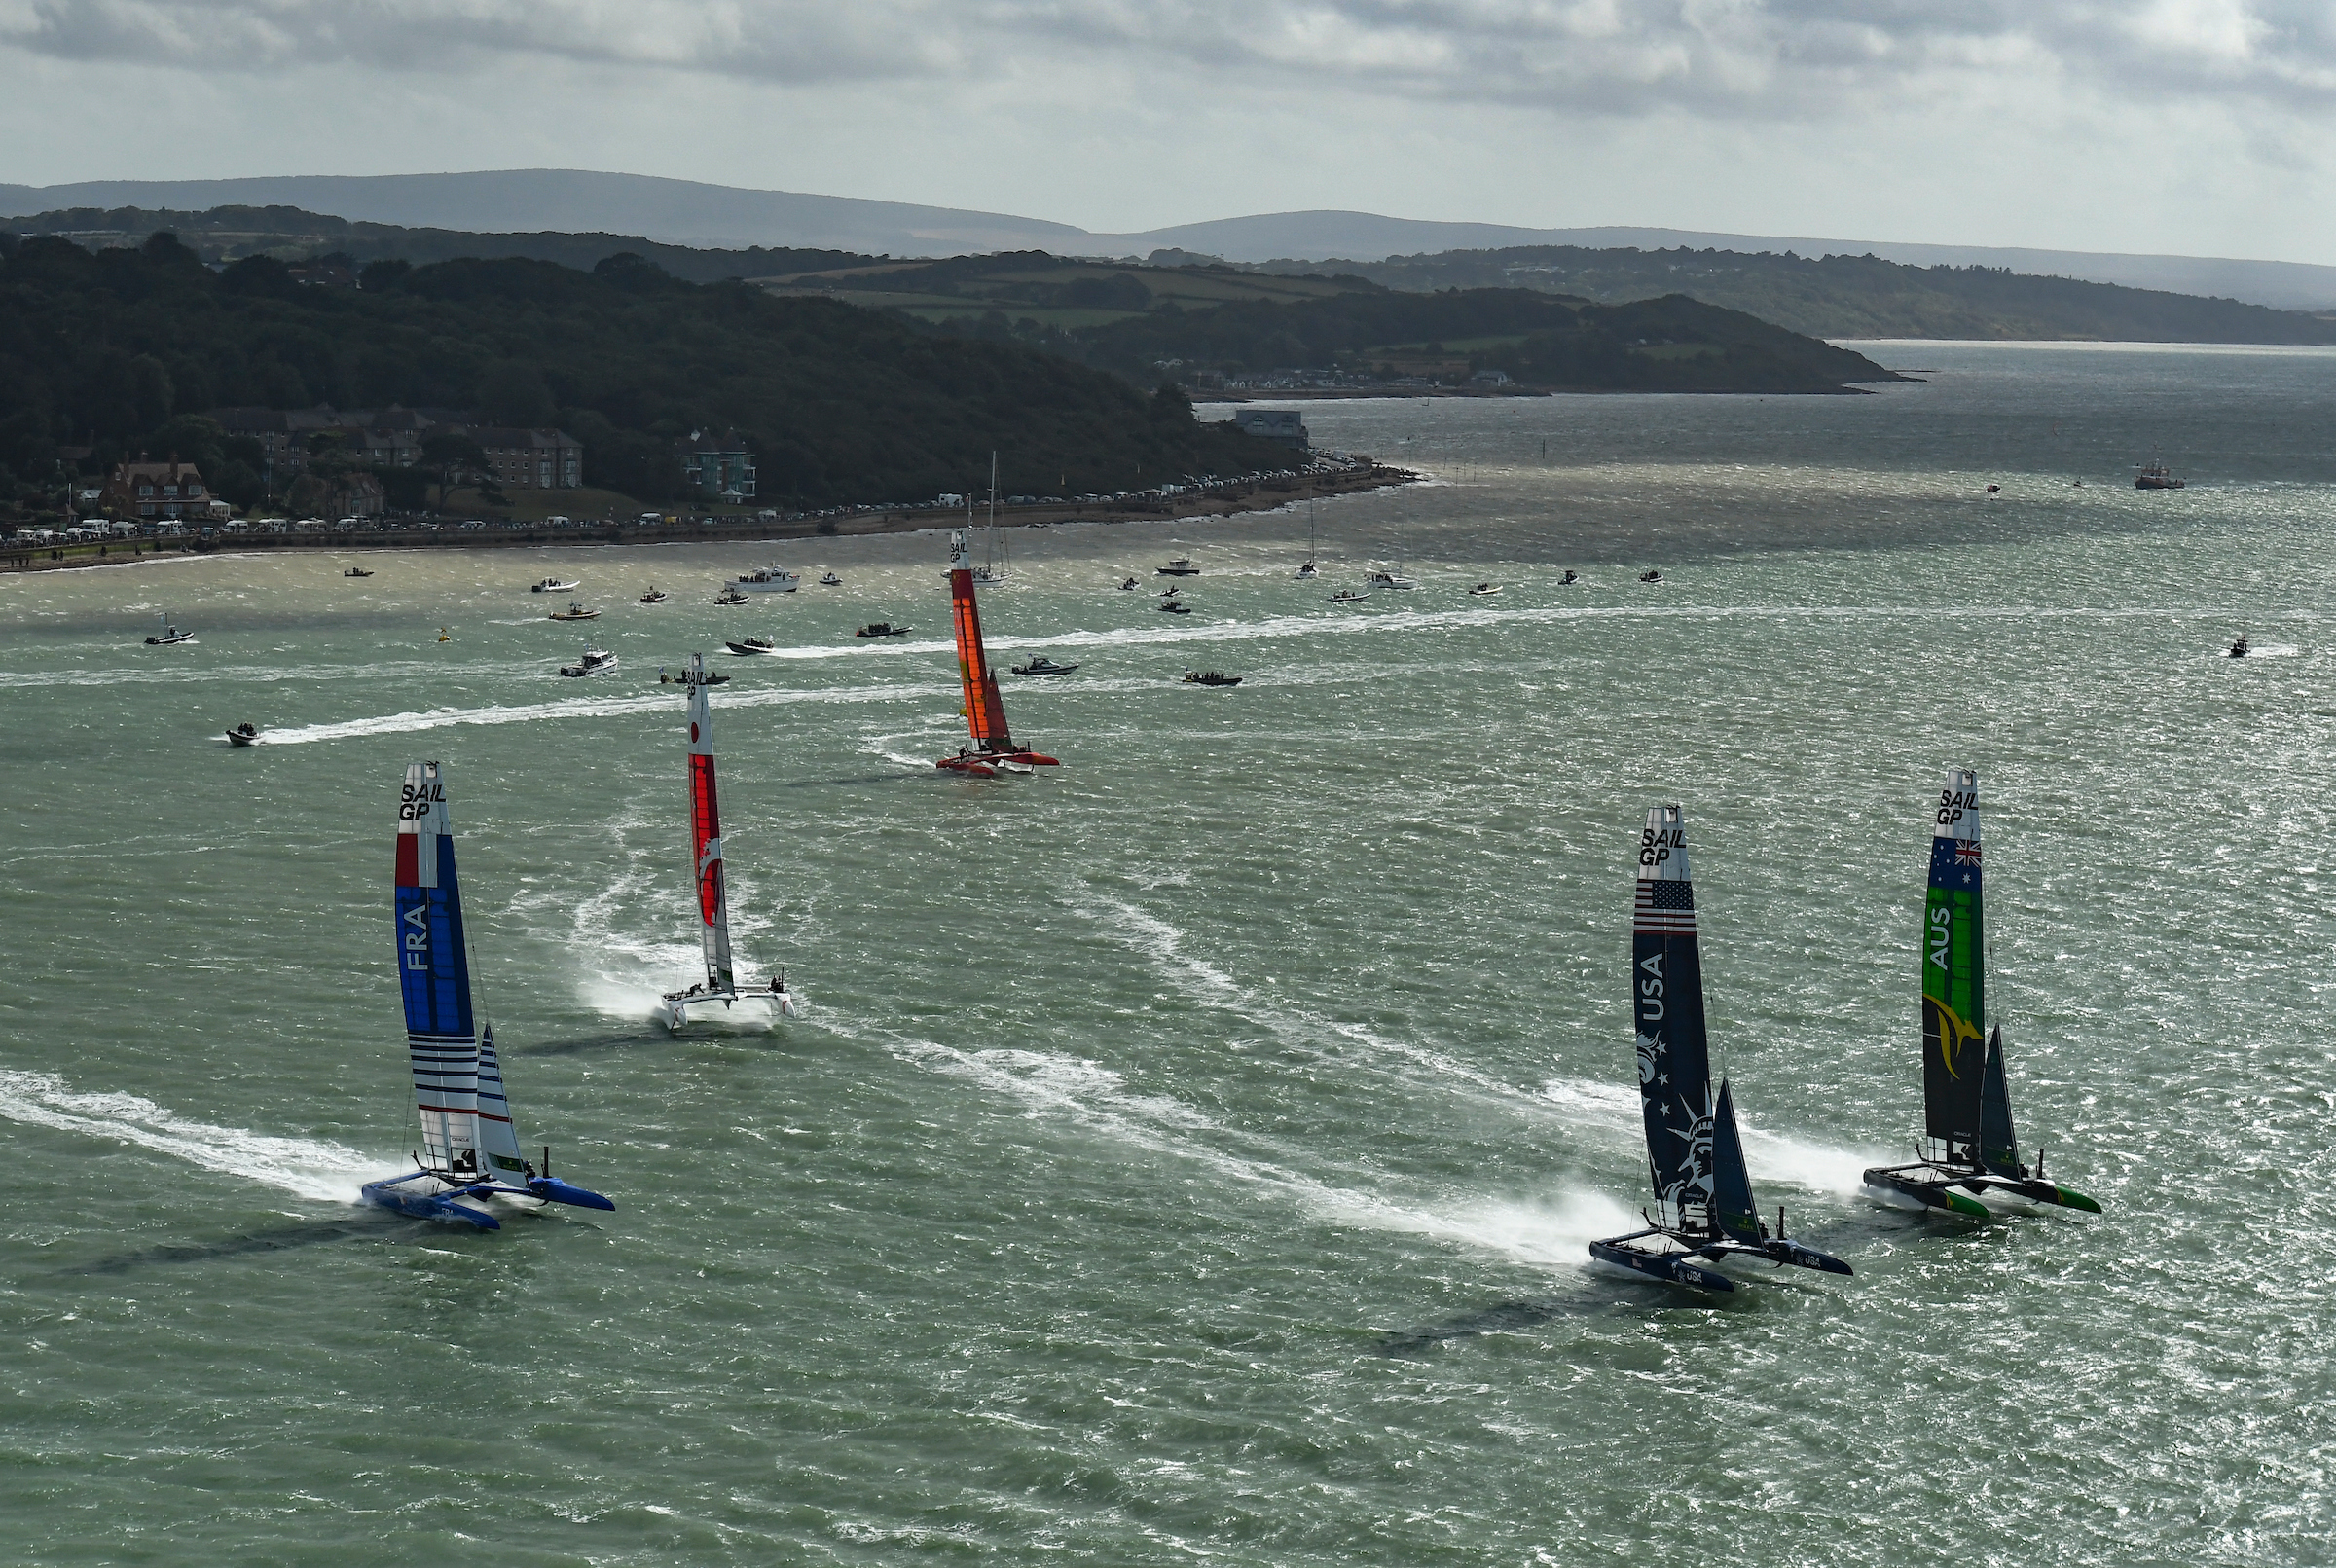 The fleet in Cowes